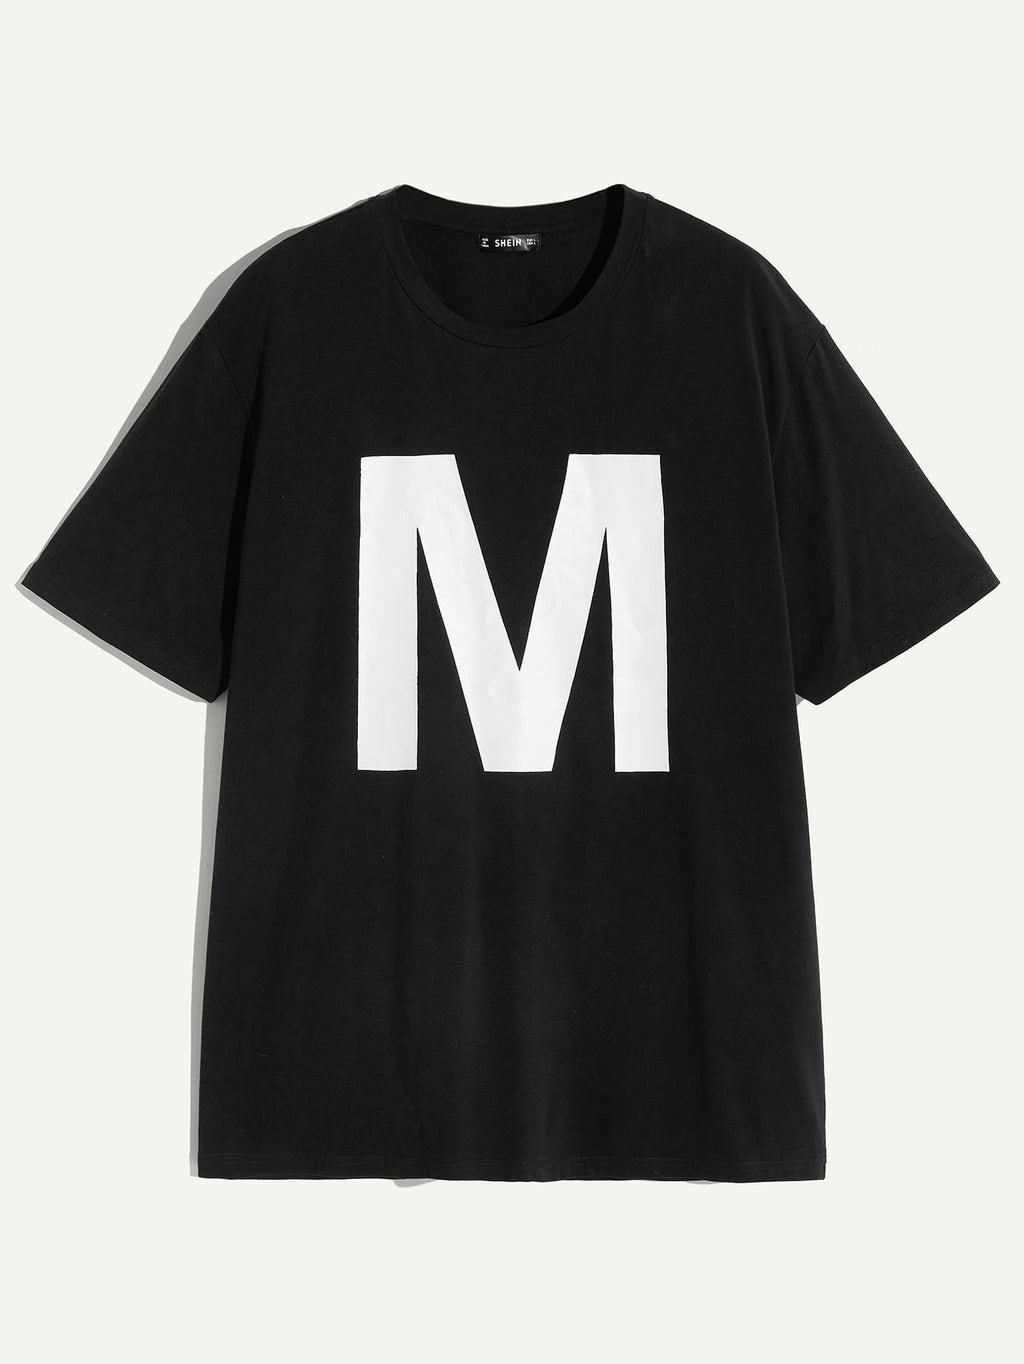 M Letter Print Tee - mroutfit